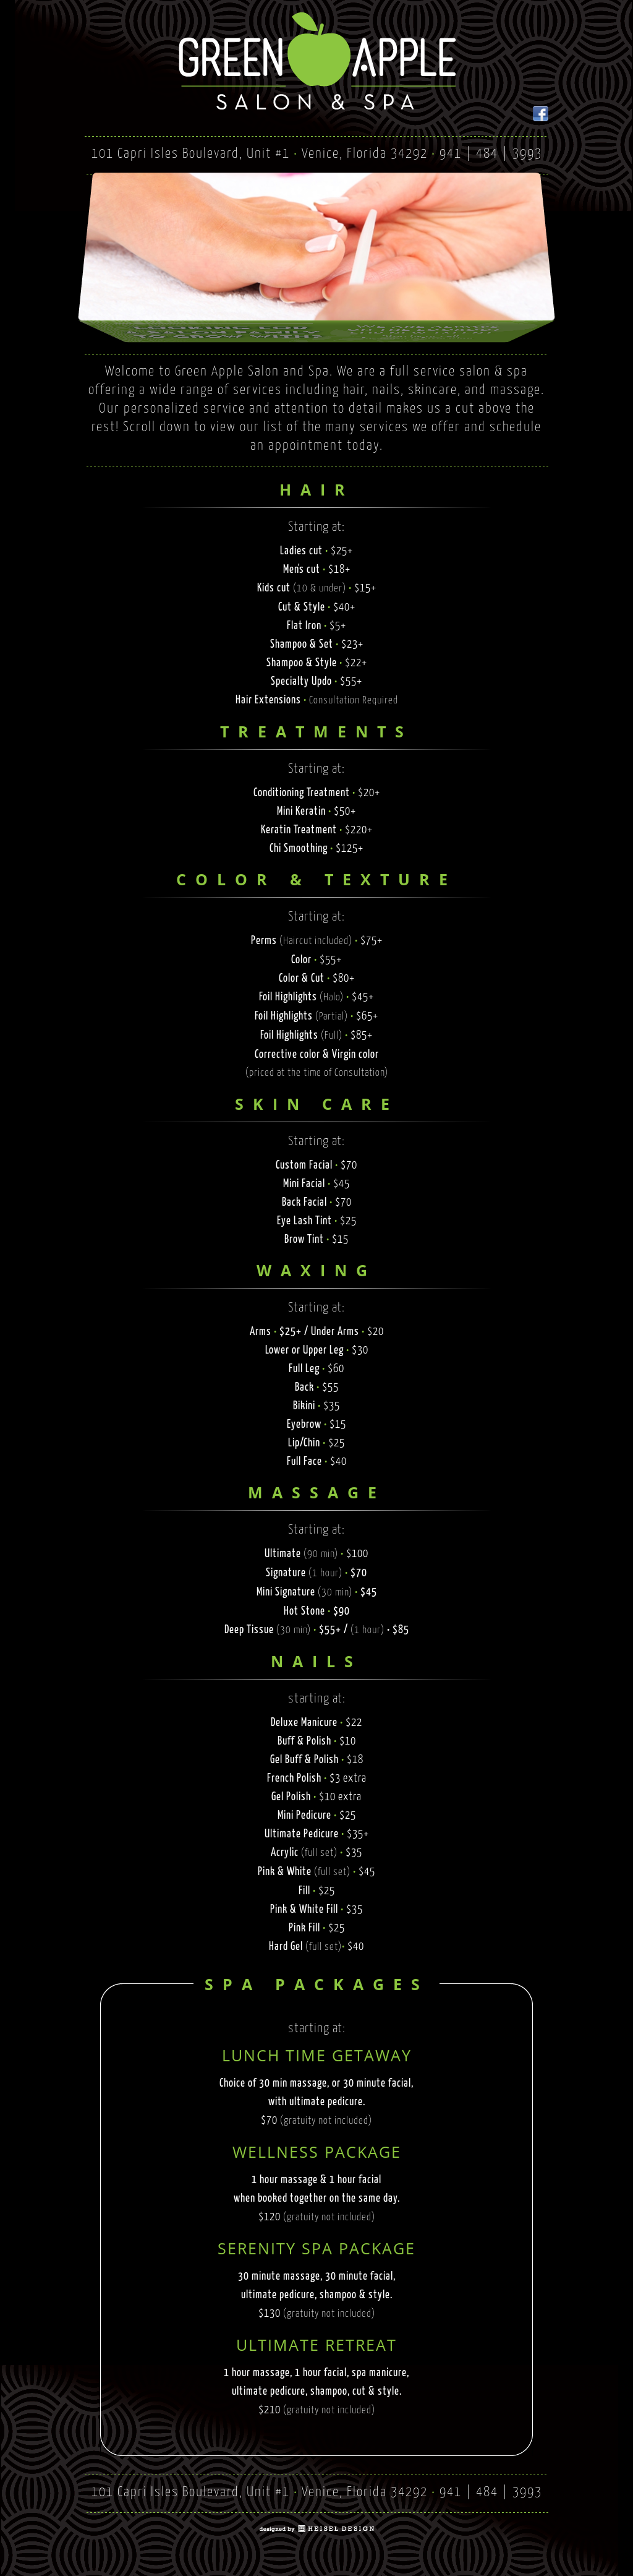 Green Apple Salon & Spa Competitors, Revenue and Employees